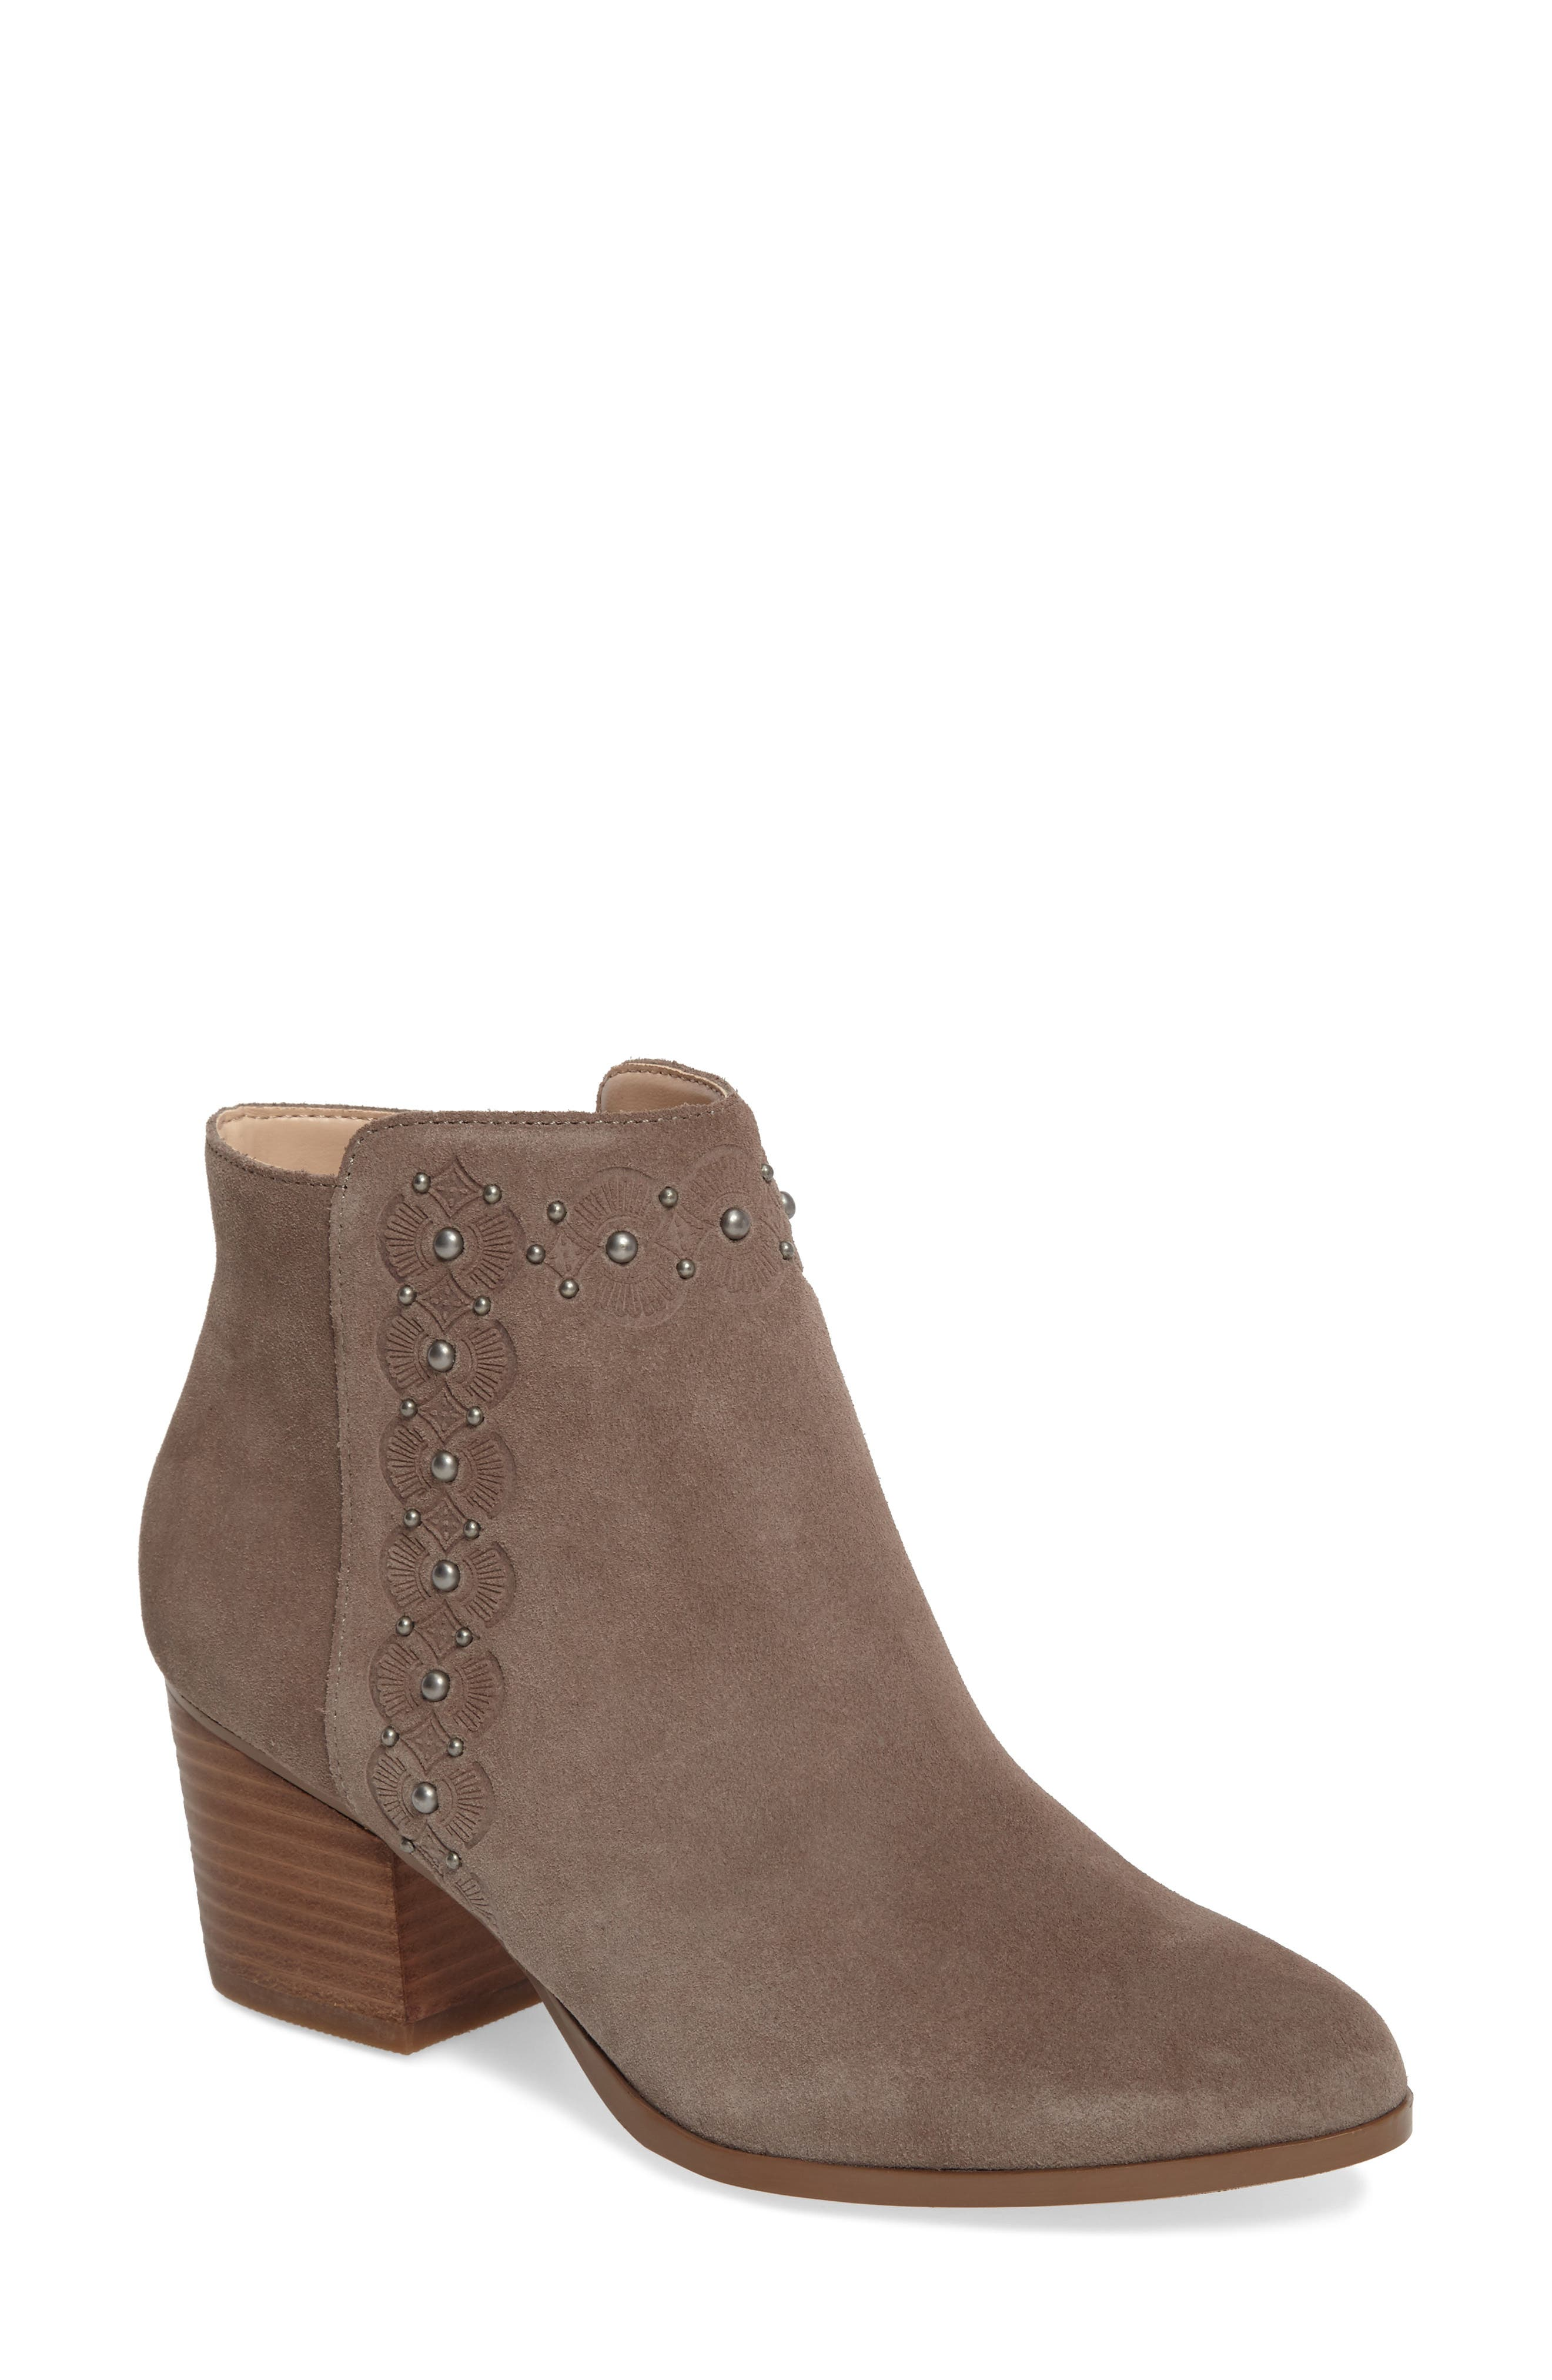 Gala Studded Embossed Bootie,                             Main thumbnail 1, color,                             020